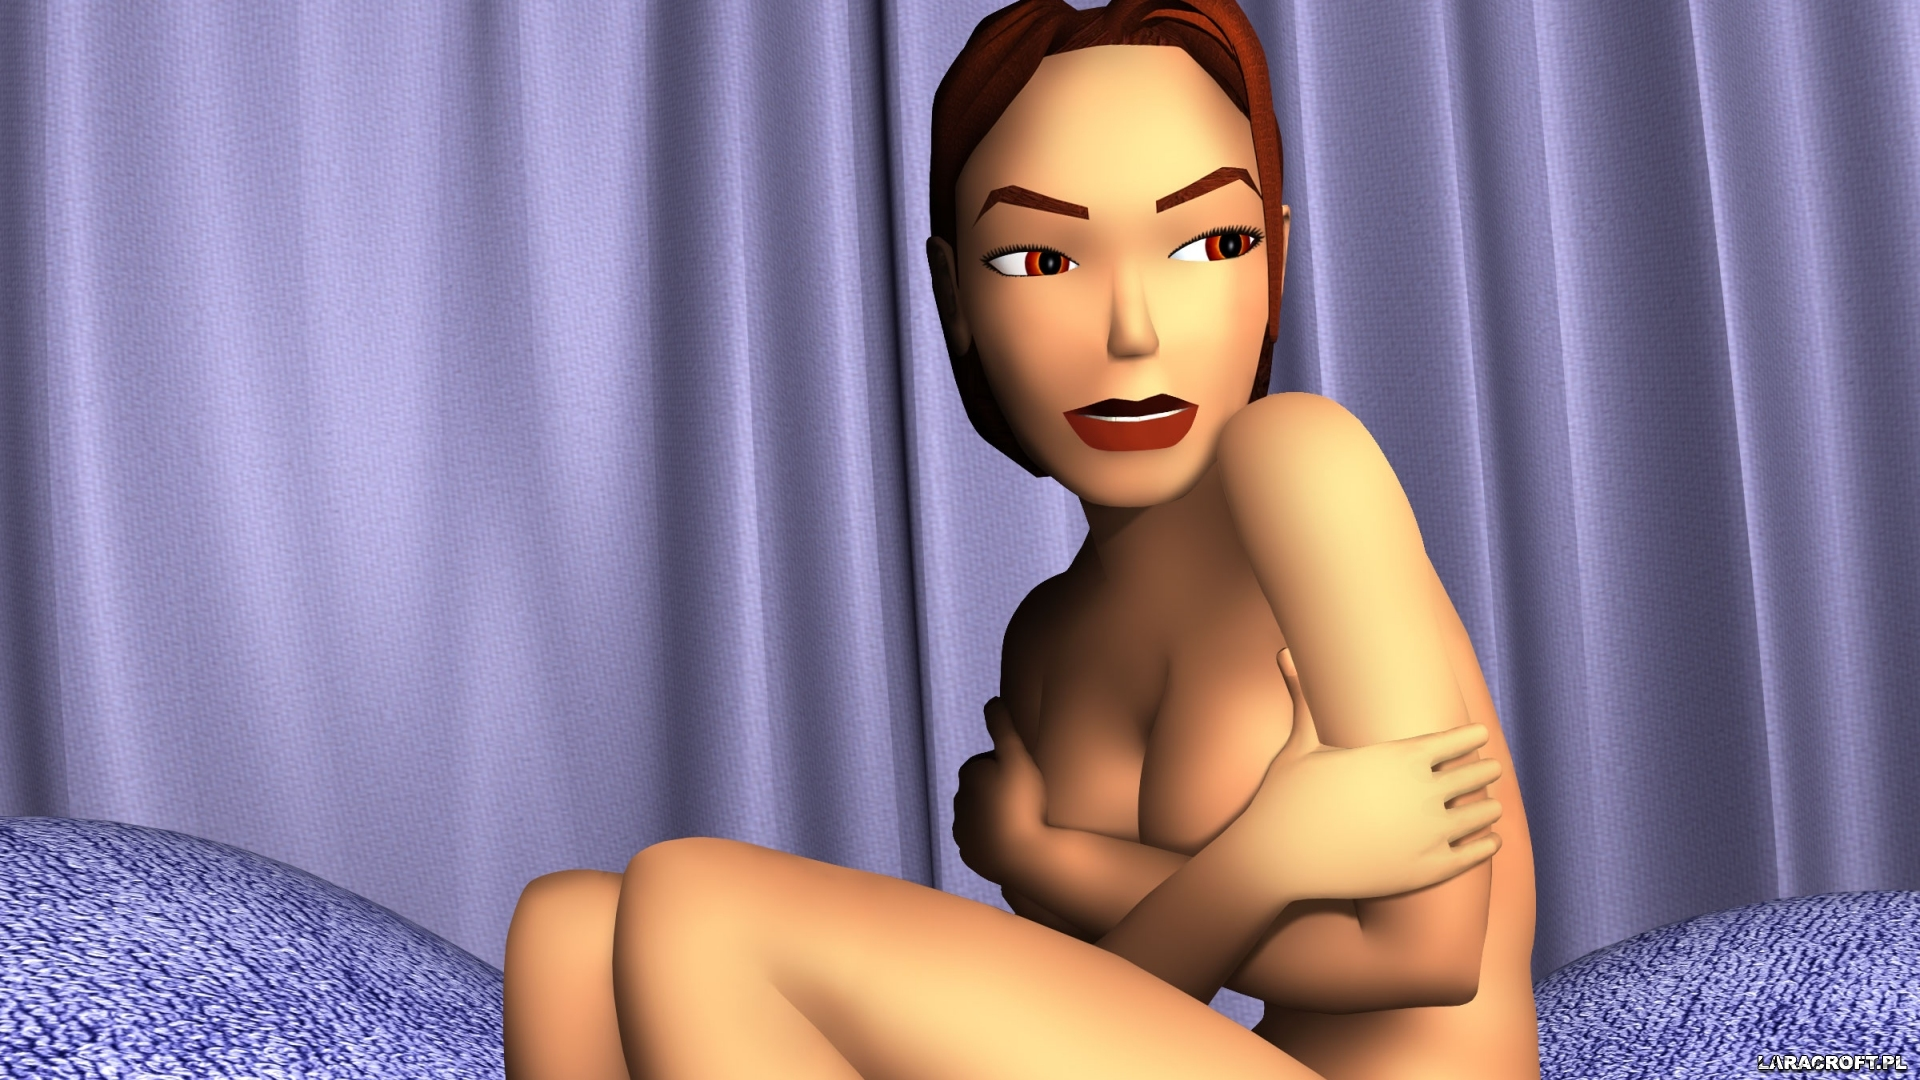 Animation 3d tomb raider 6 show pussy sex image